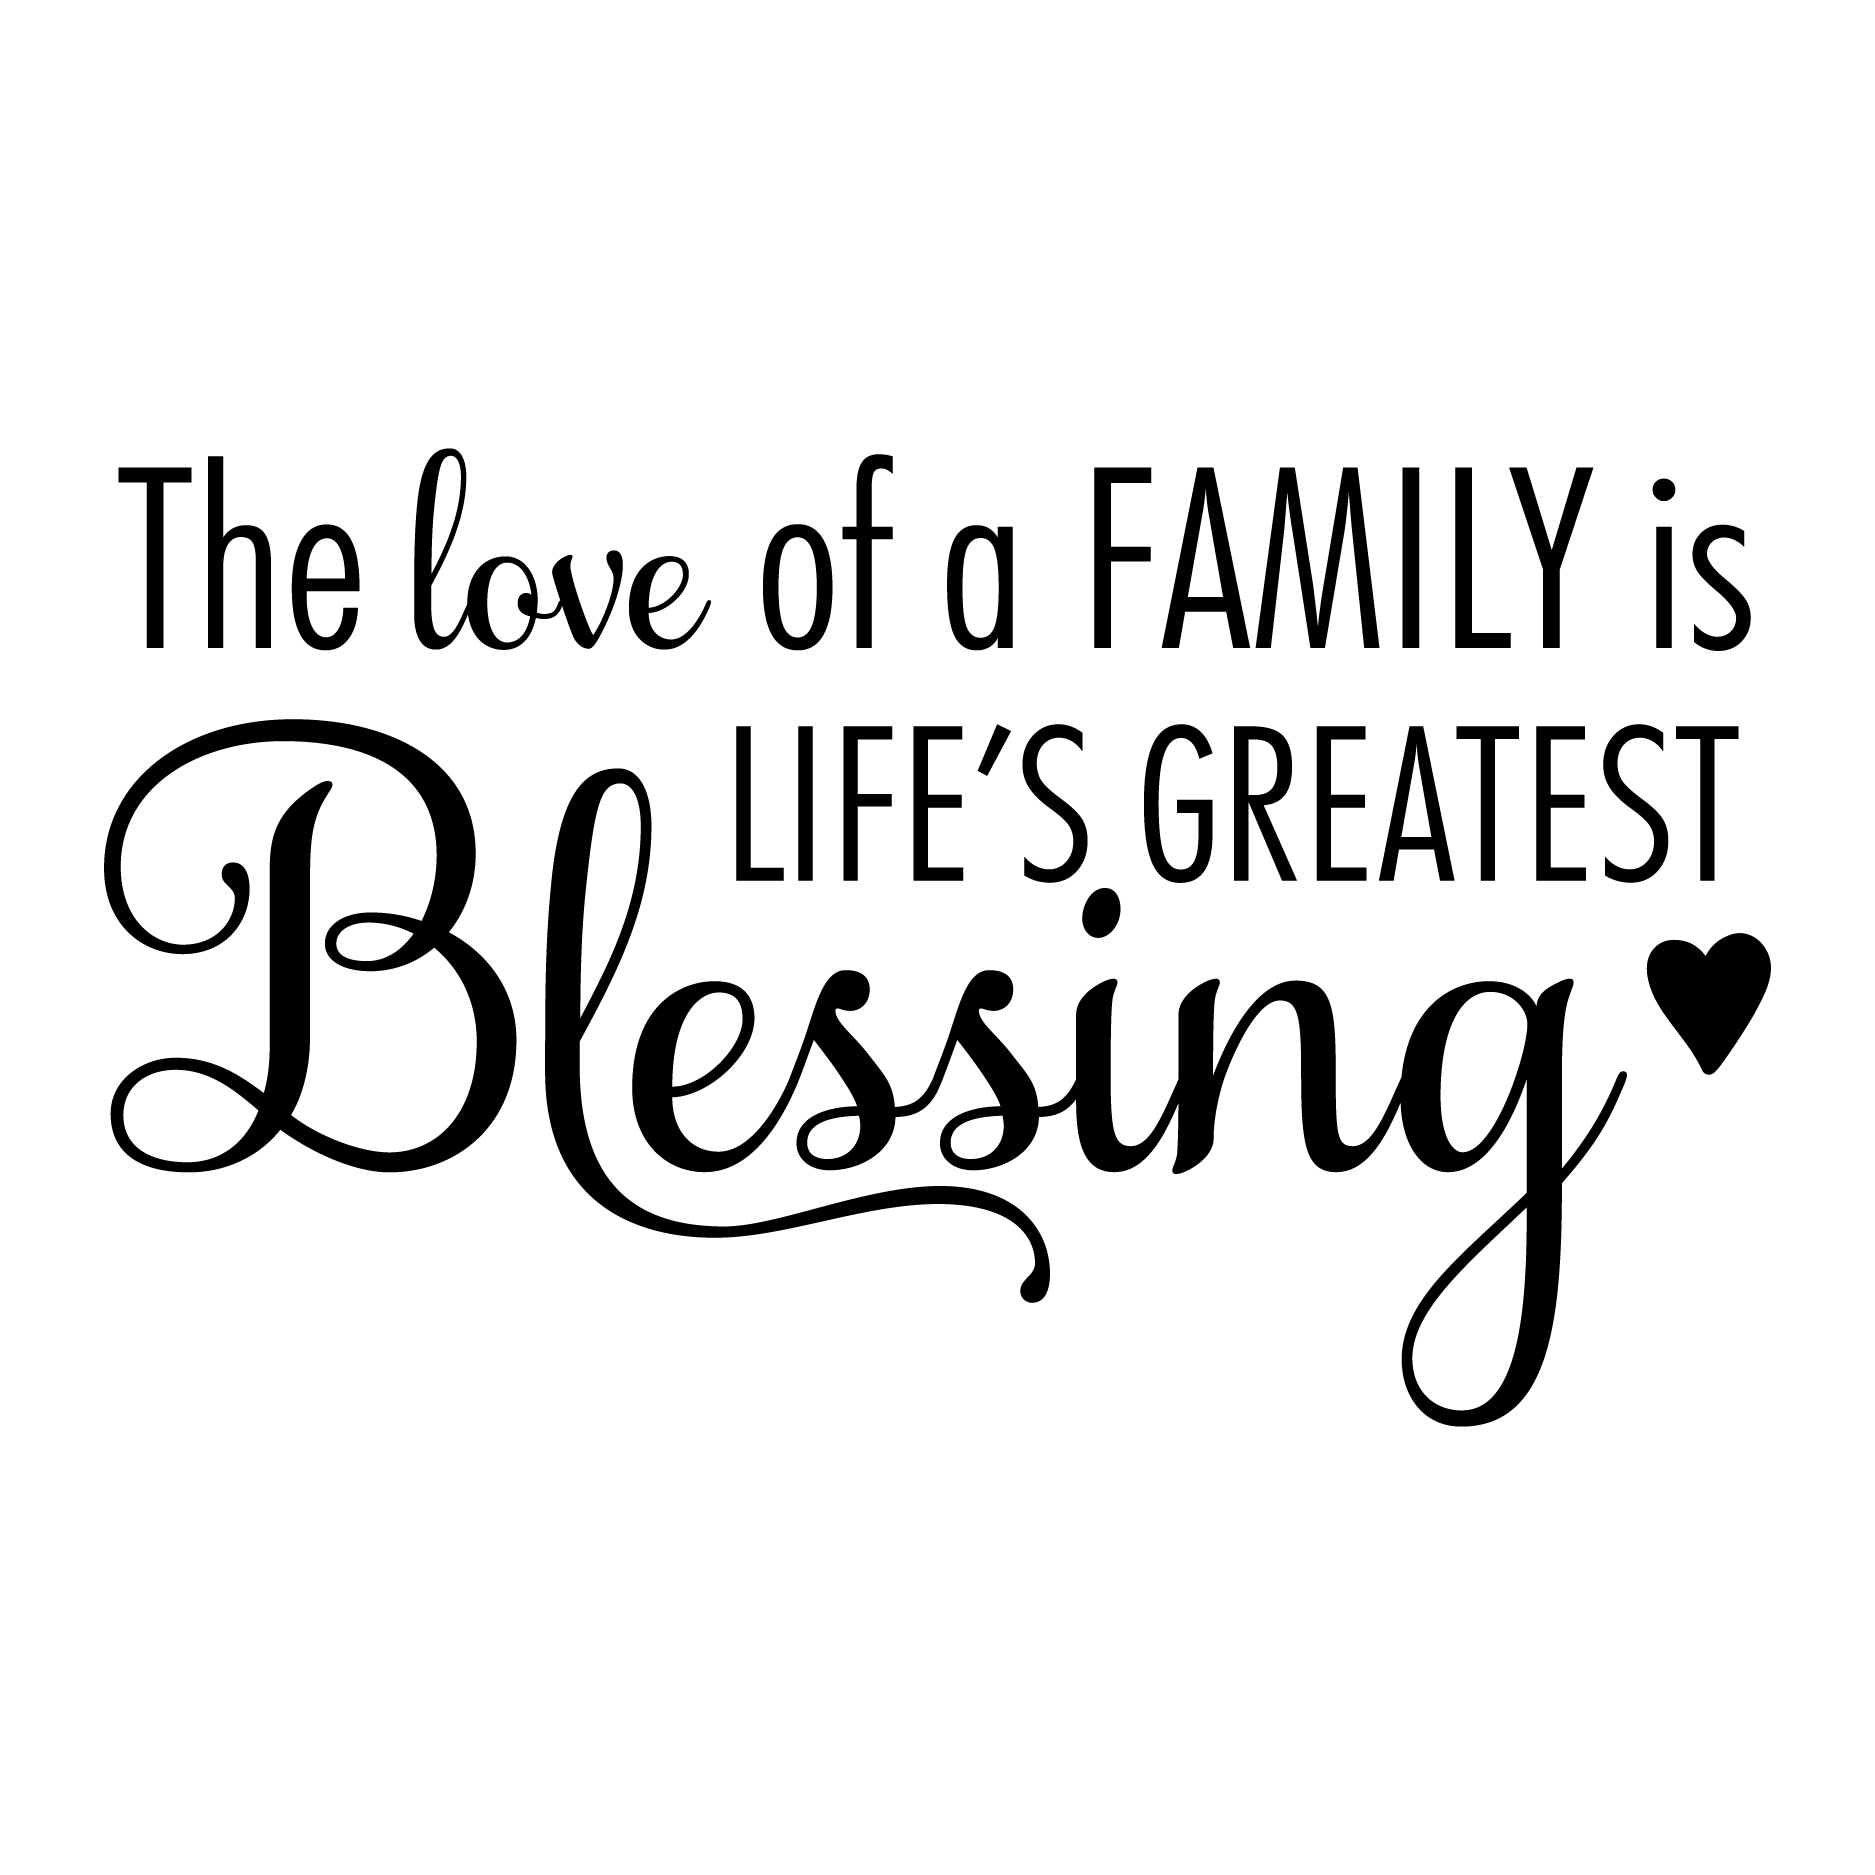 The Love Of A Family Wall Quotes Decal